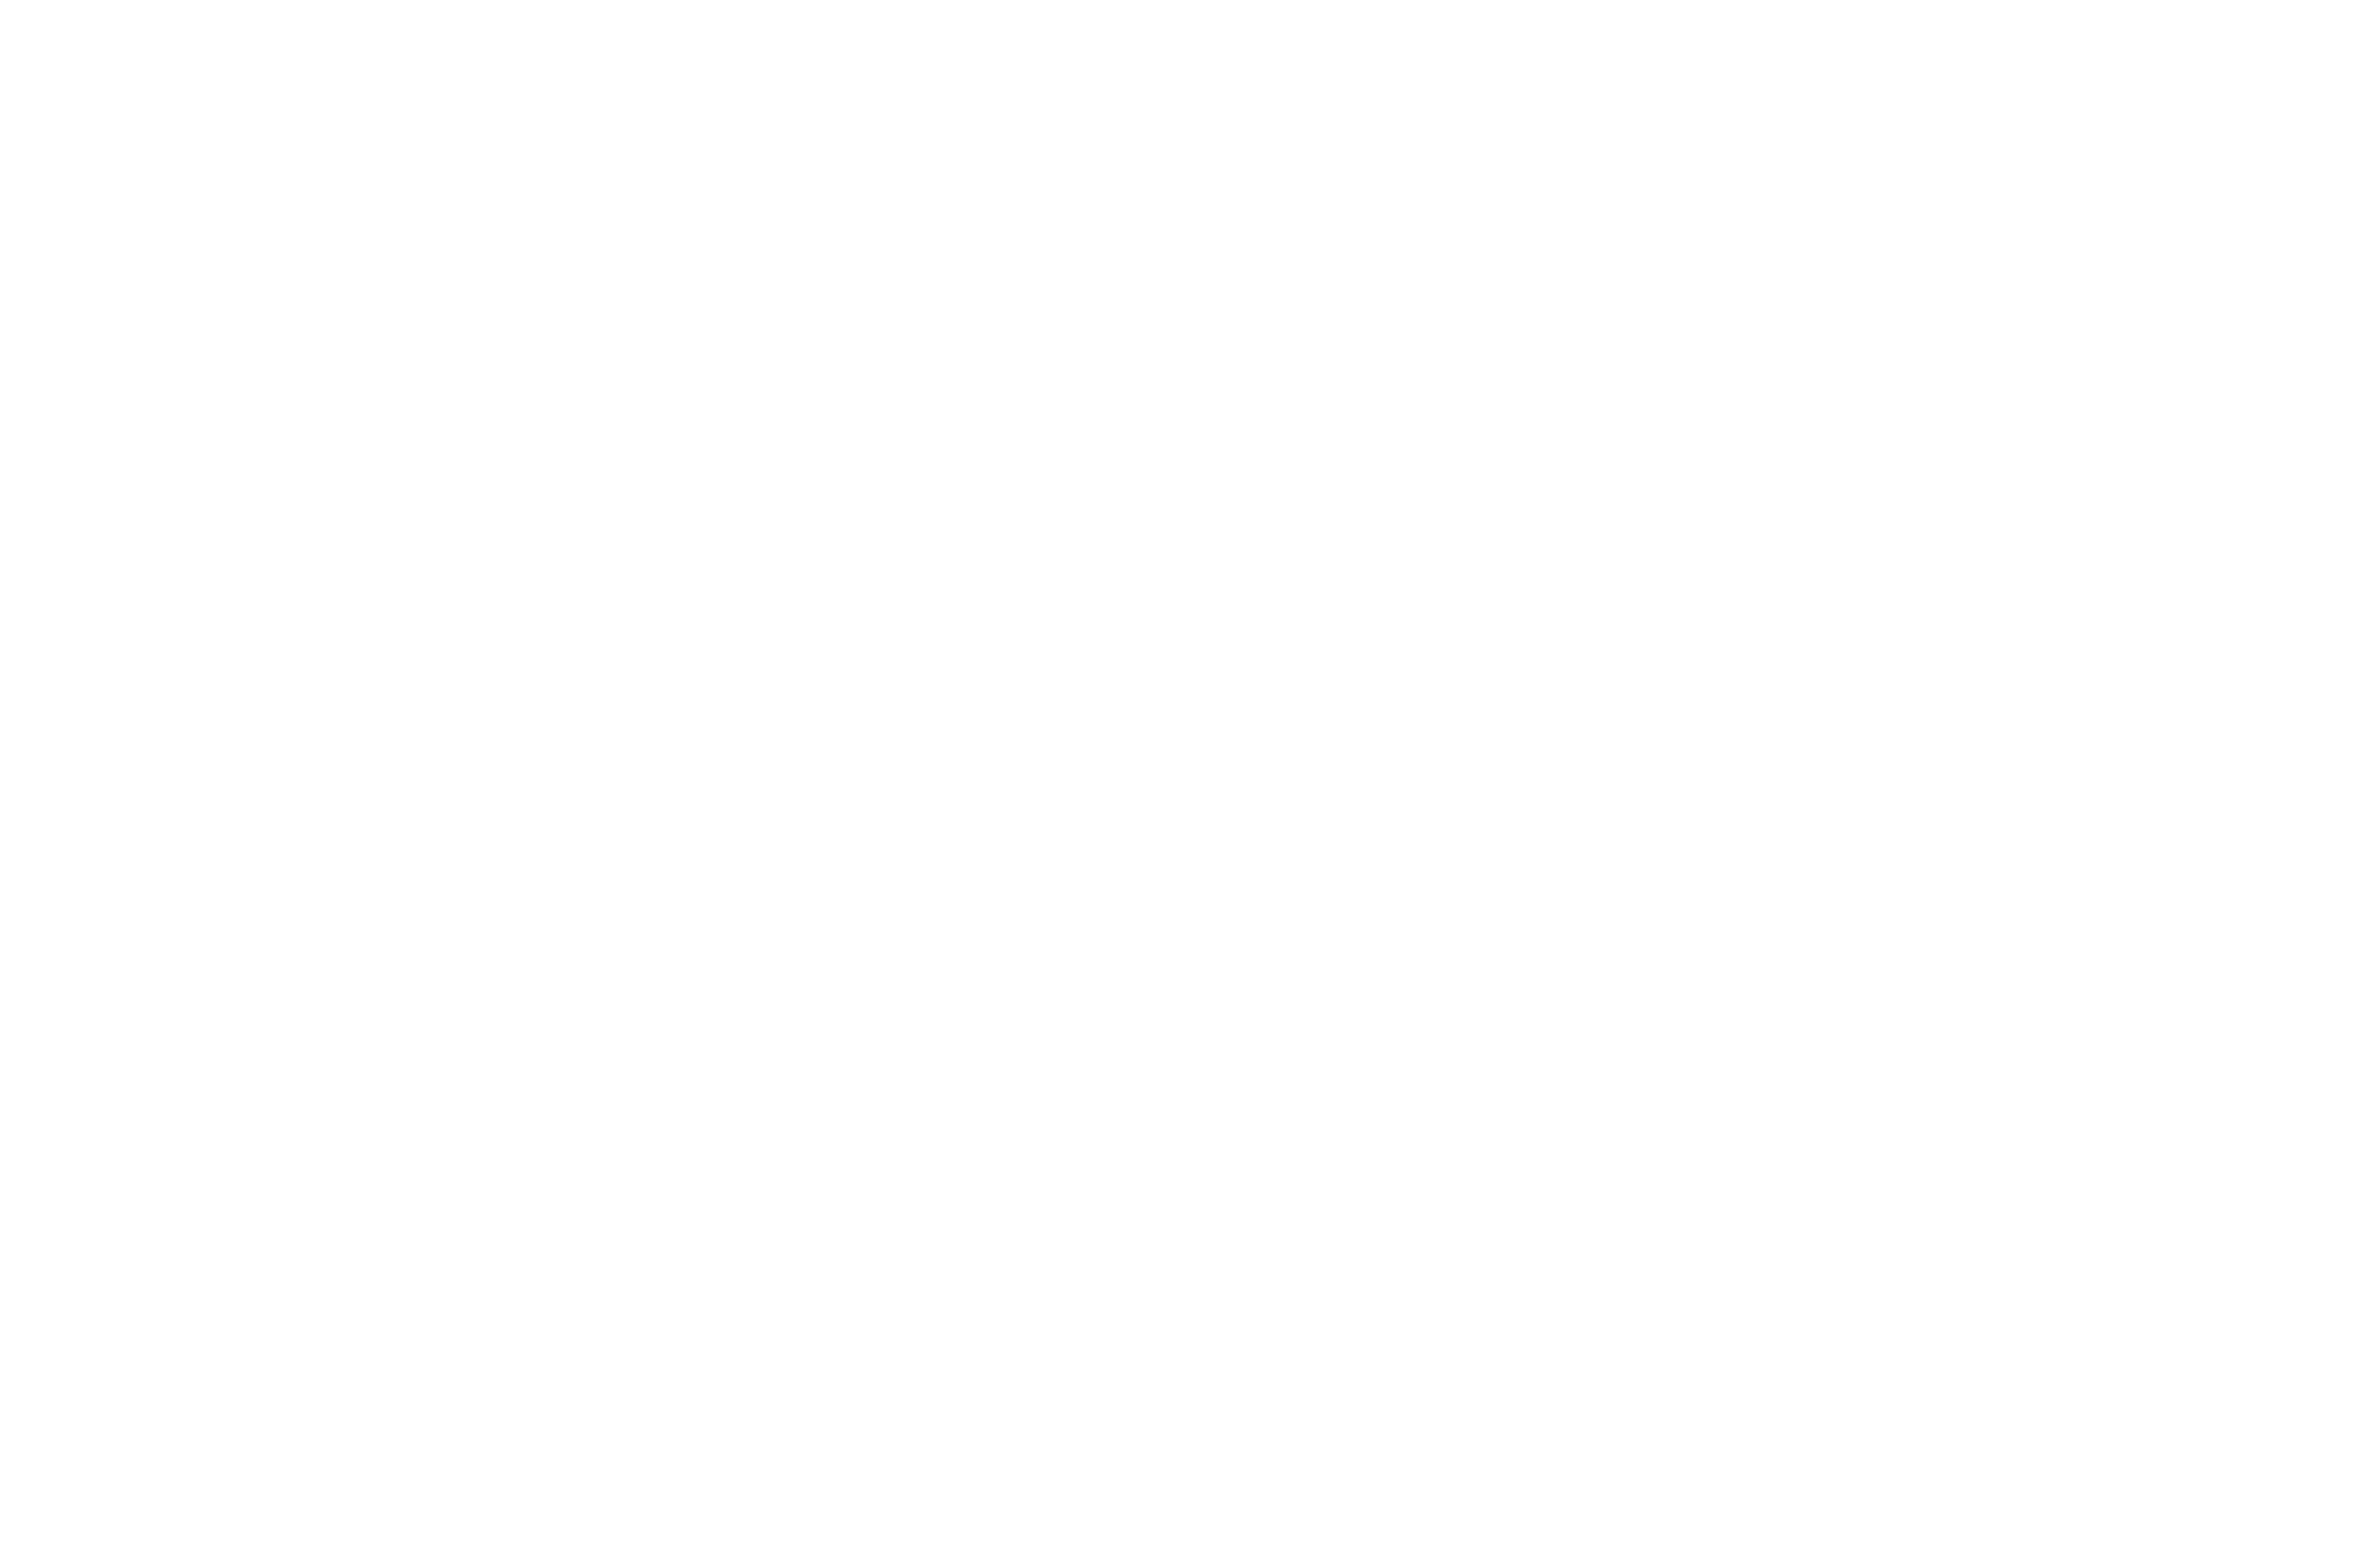 move-outline.png